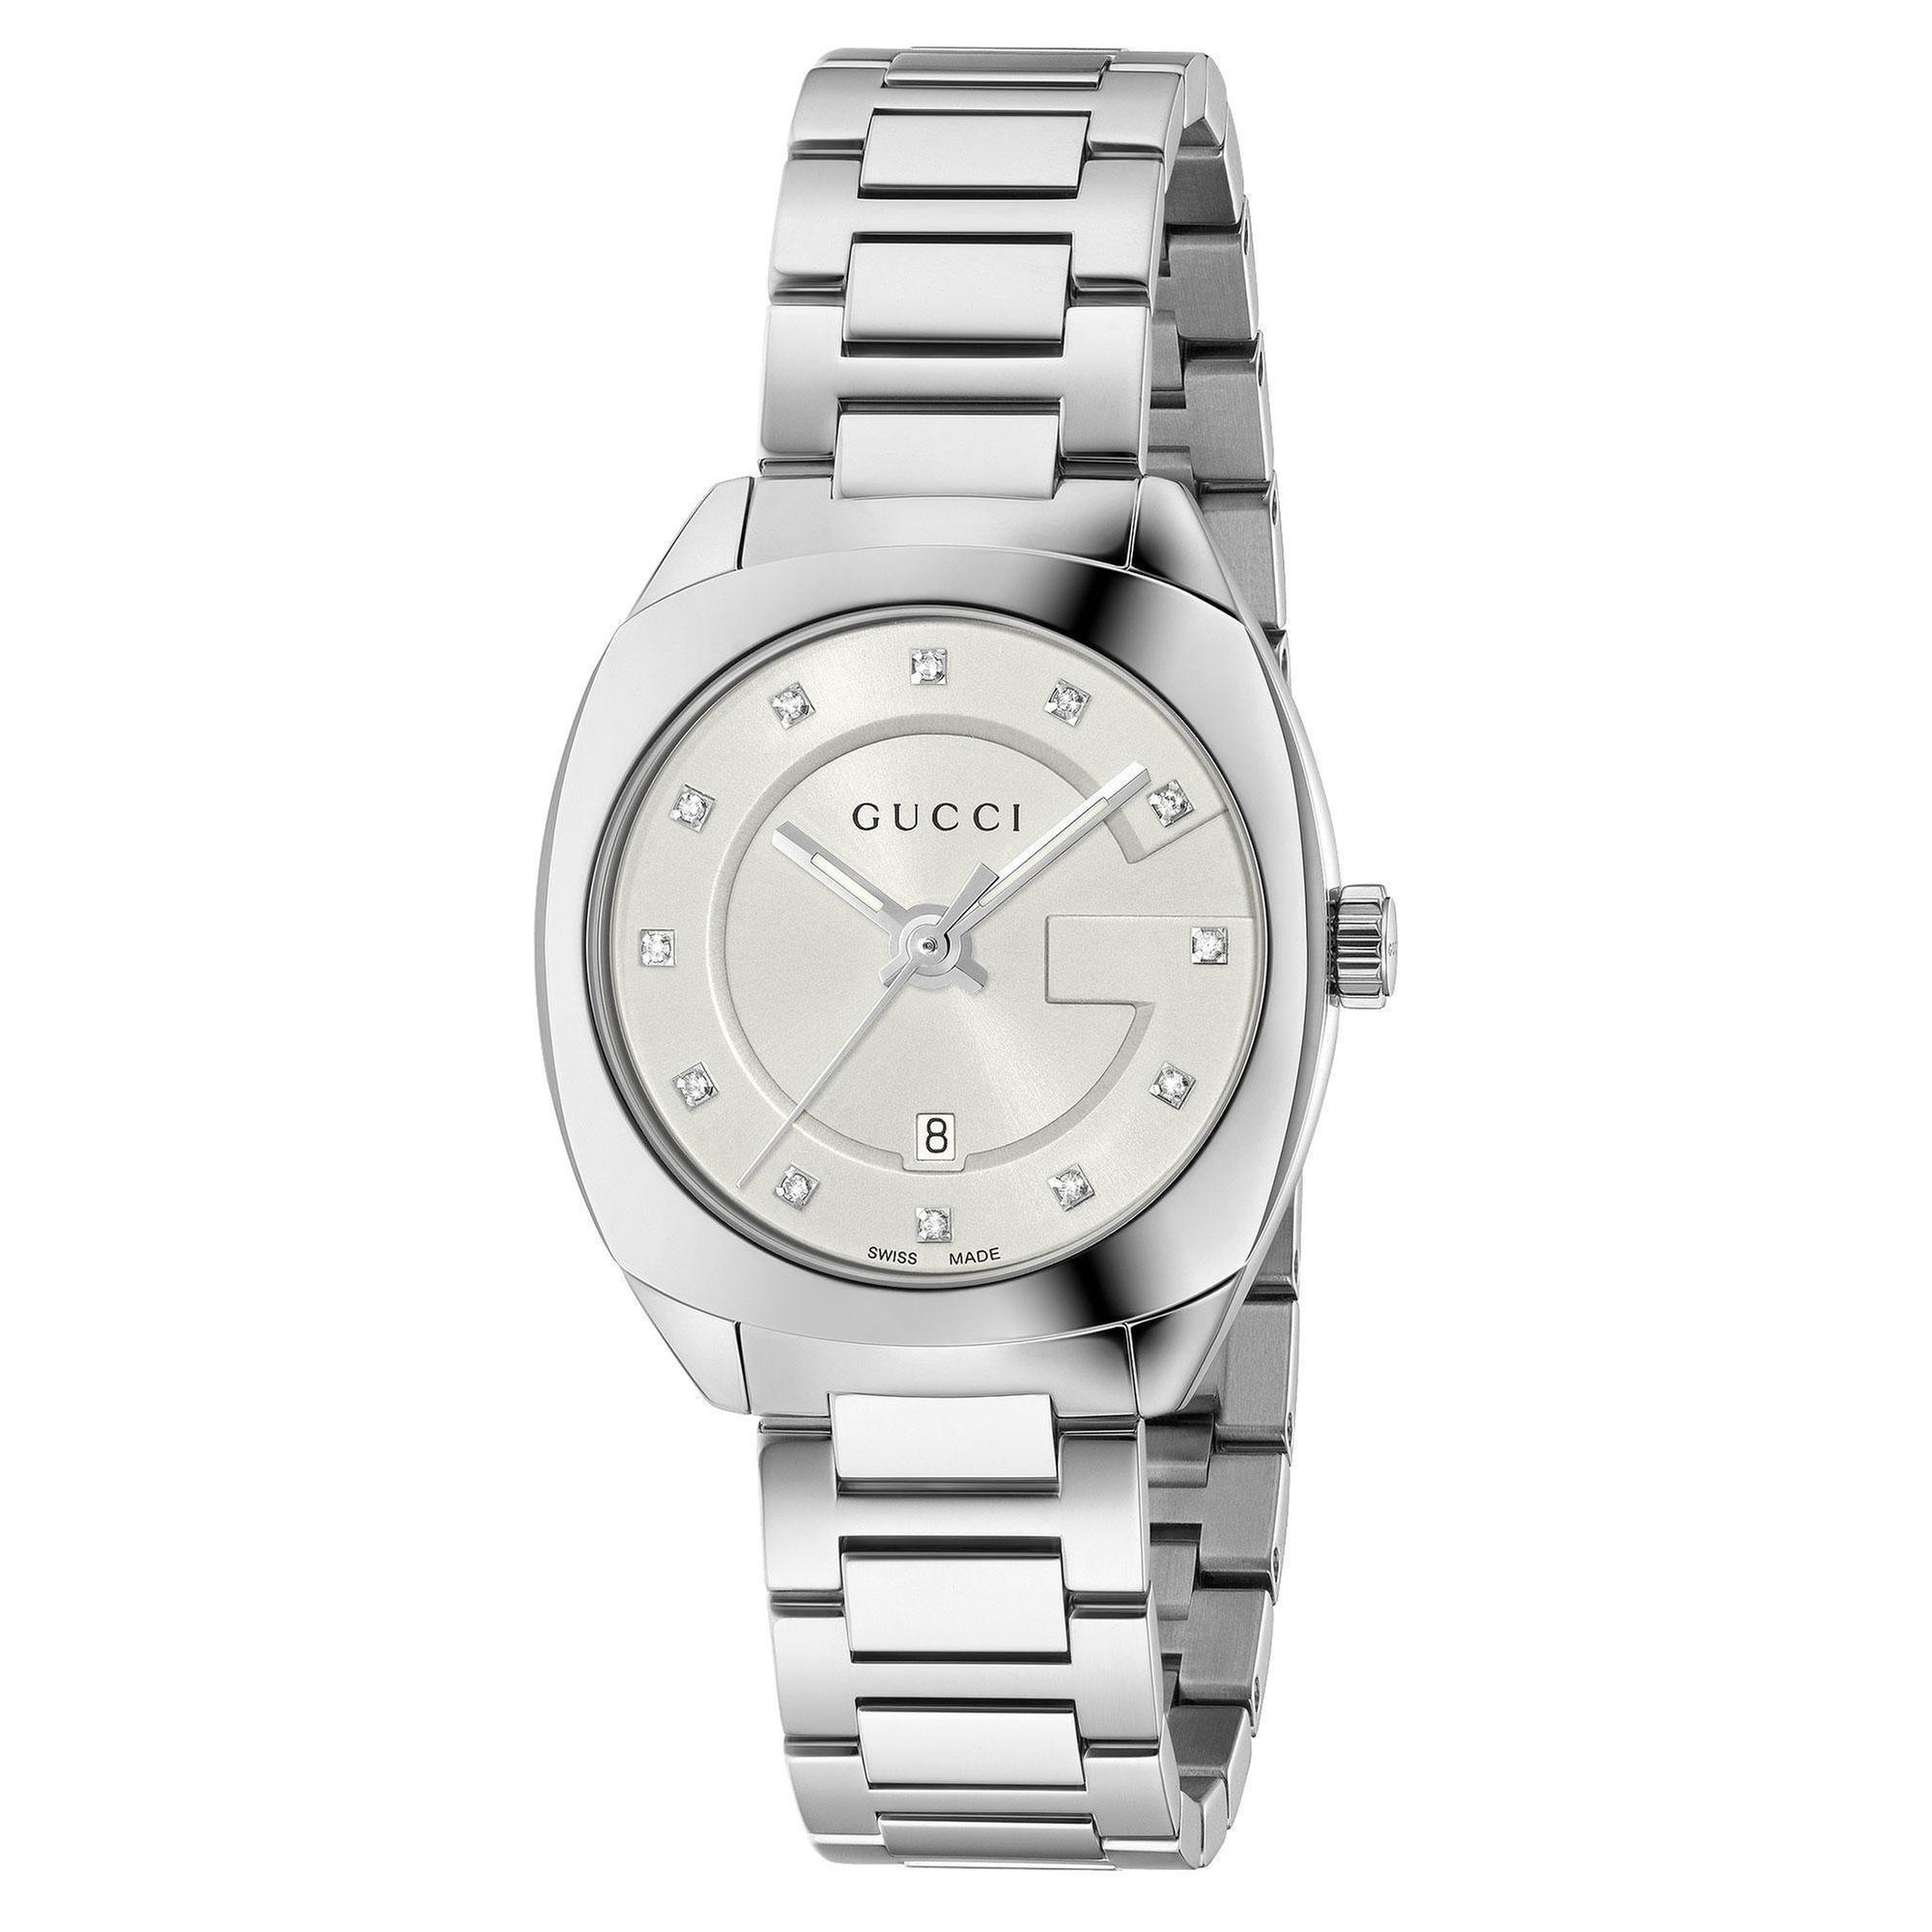 f68d4bc798a Shop Gucci Women s  GG2570 Small  Diamond Stainless Steel Watch - Free  Shipping Today - Overstock - 13211874